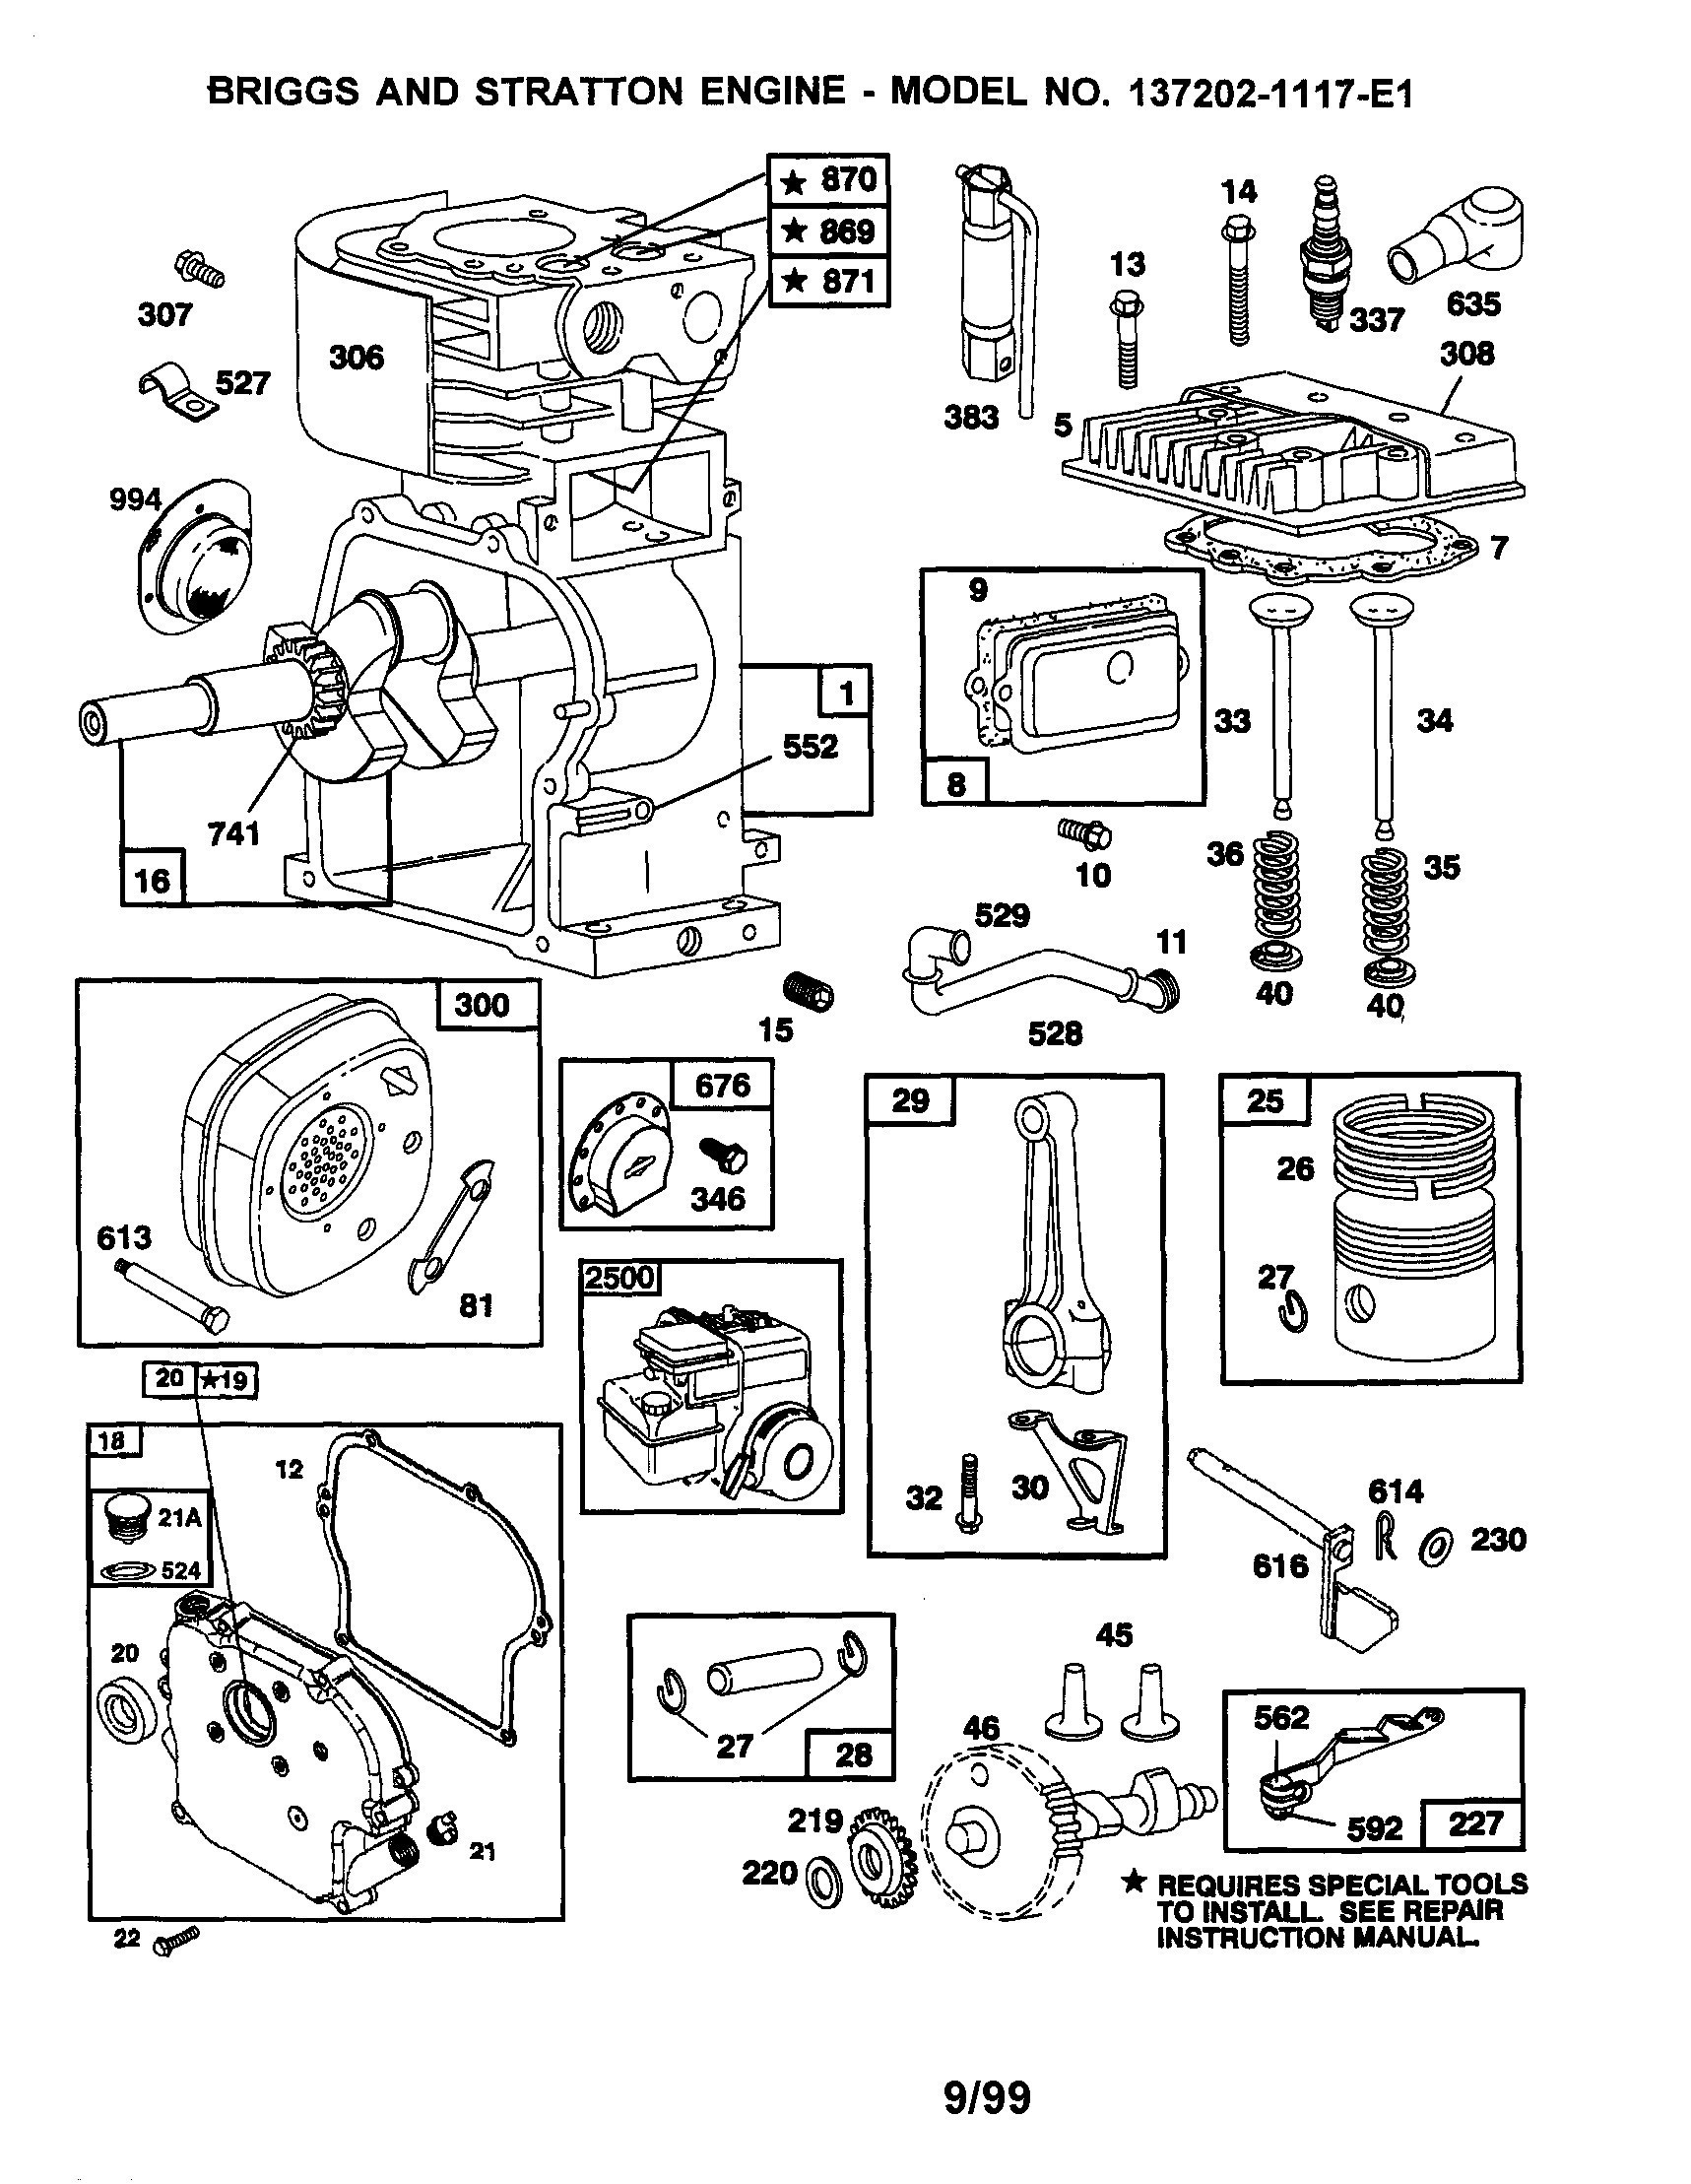 Briggs and Stratton Lawn Mower Engine Diagram Briggs Stratton Engine Parts and Diagrams 2